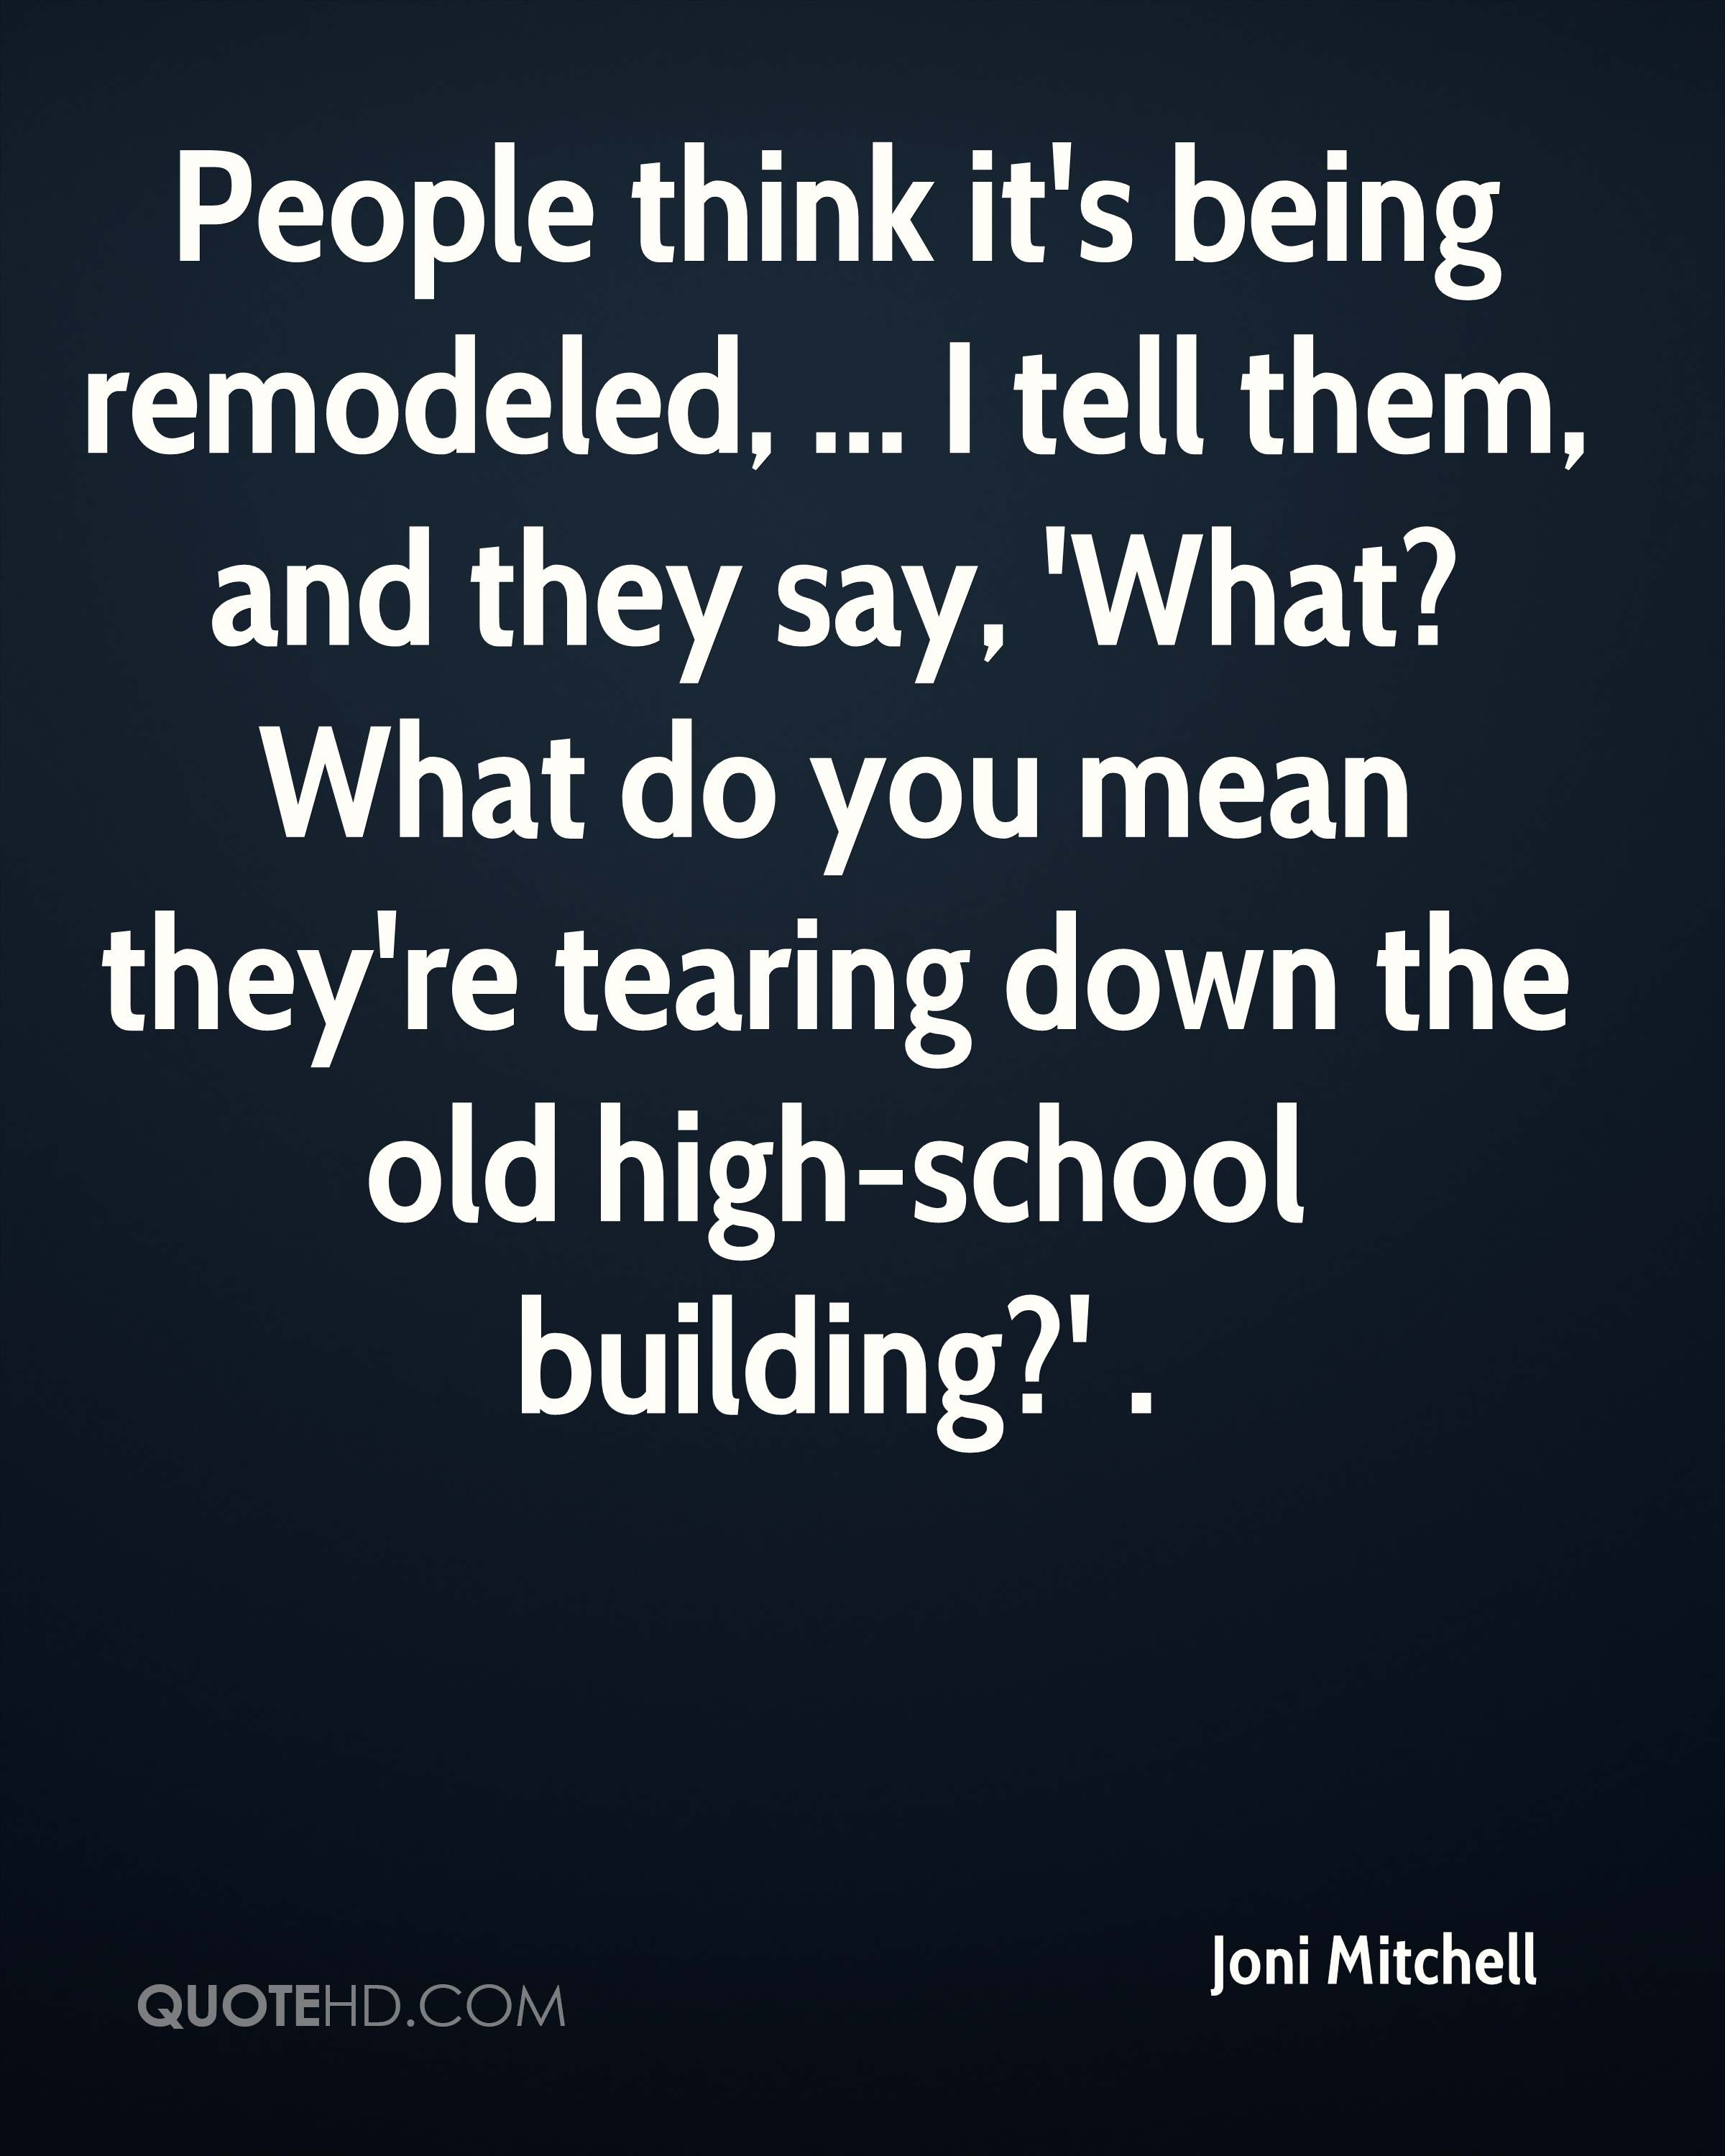 People think it's being remodeled, ... I tell them, and they say, 'What? What do you mean they're tearing down the old high-school building?' .